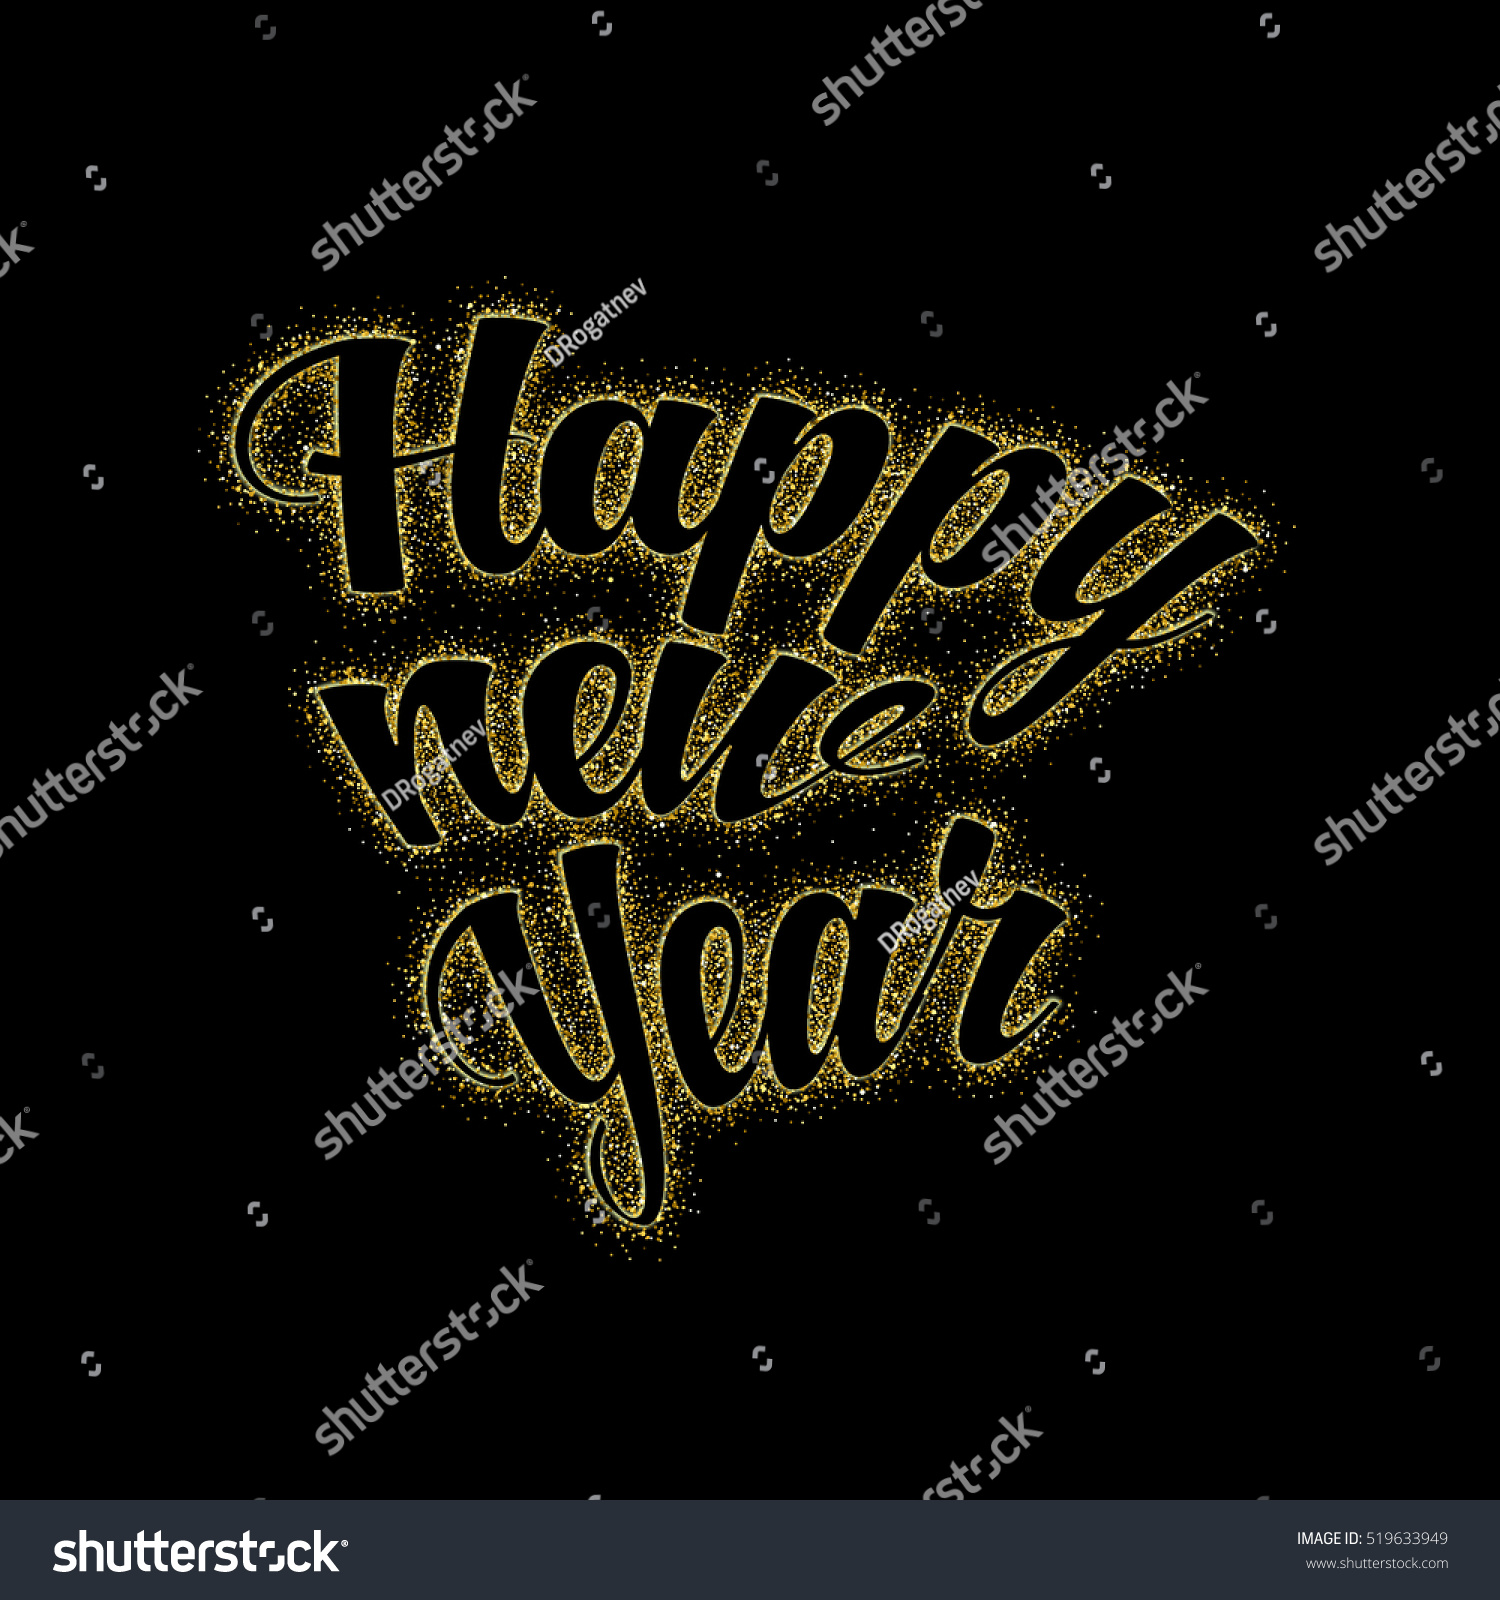 gold glitter happy new year glowing background glittering texture gold sparkles with frame